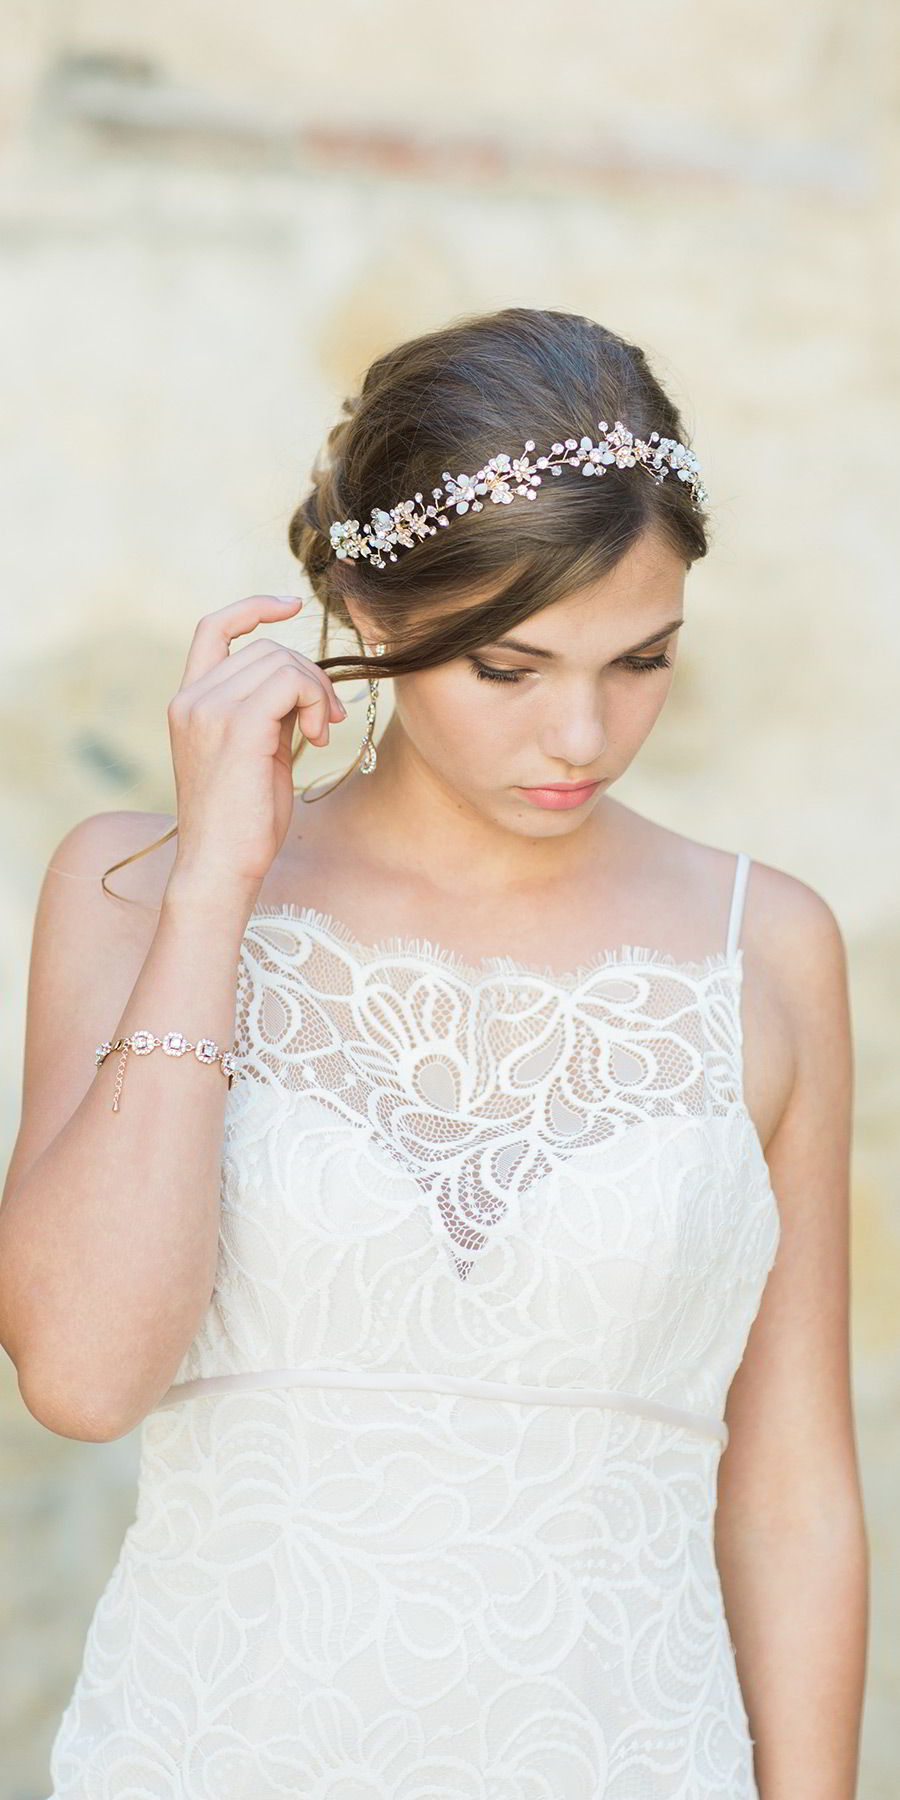 bel aire bridal accessories 6740 rhinestone crystal tie headpiece romantic wedding dress